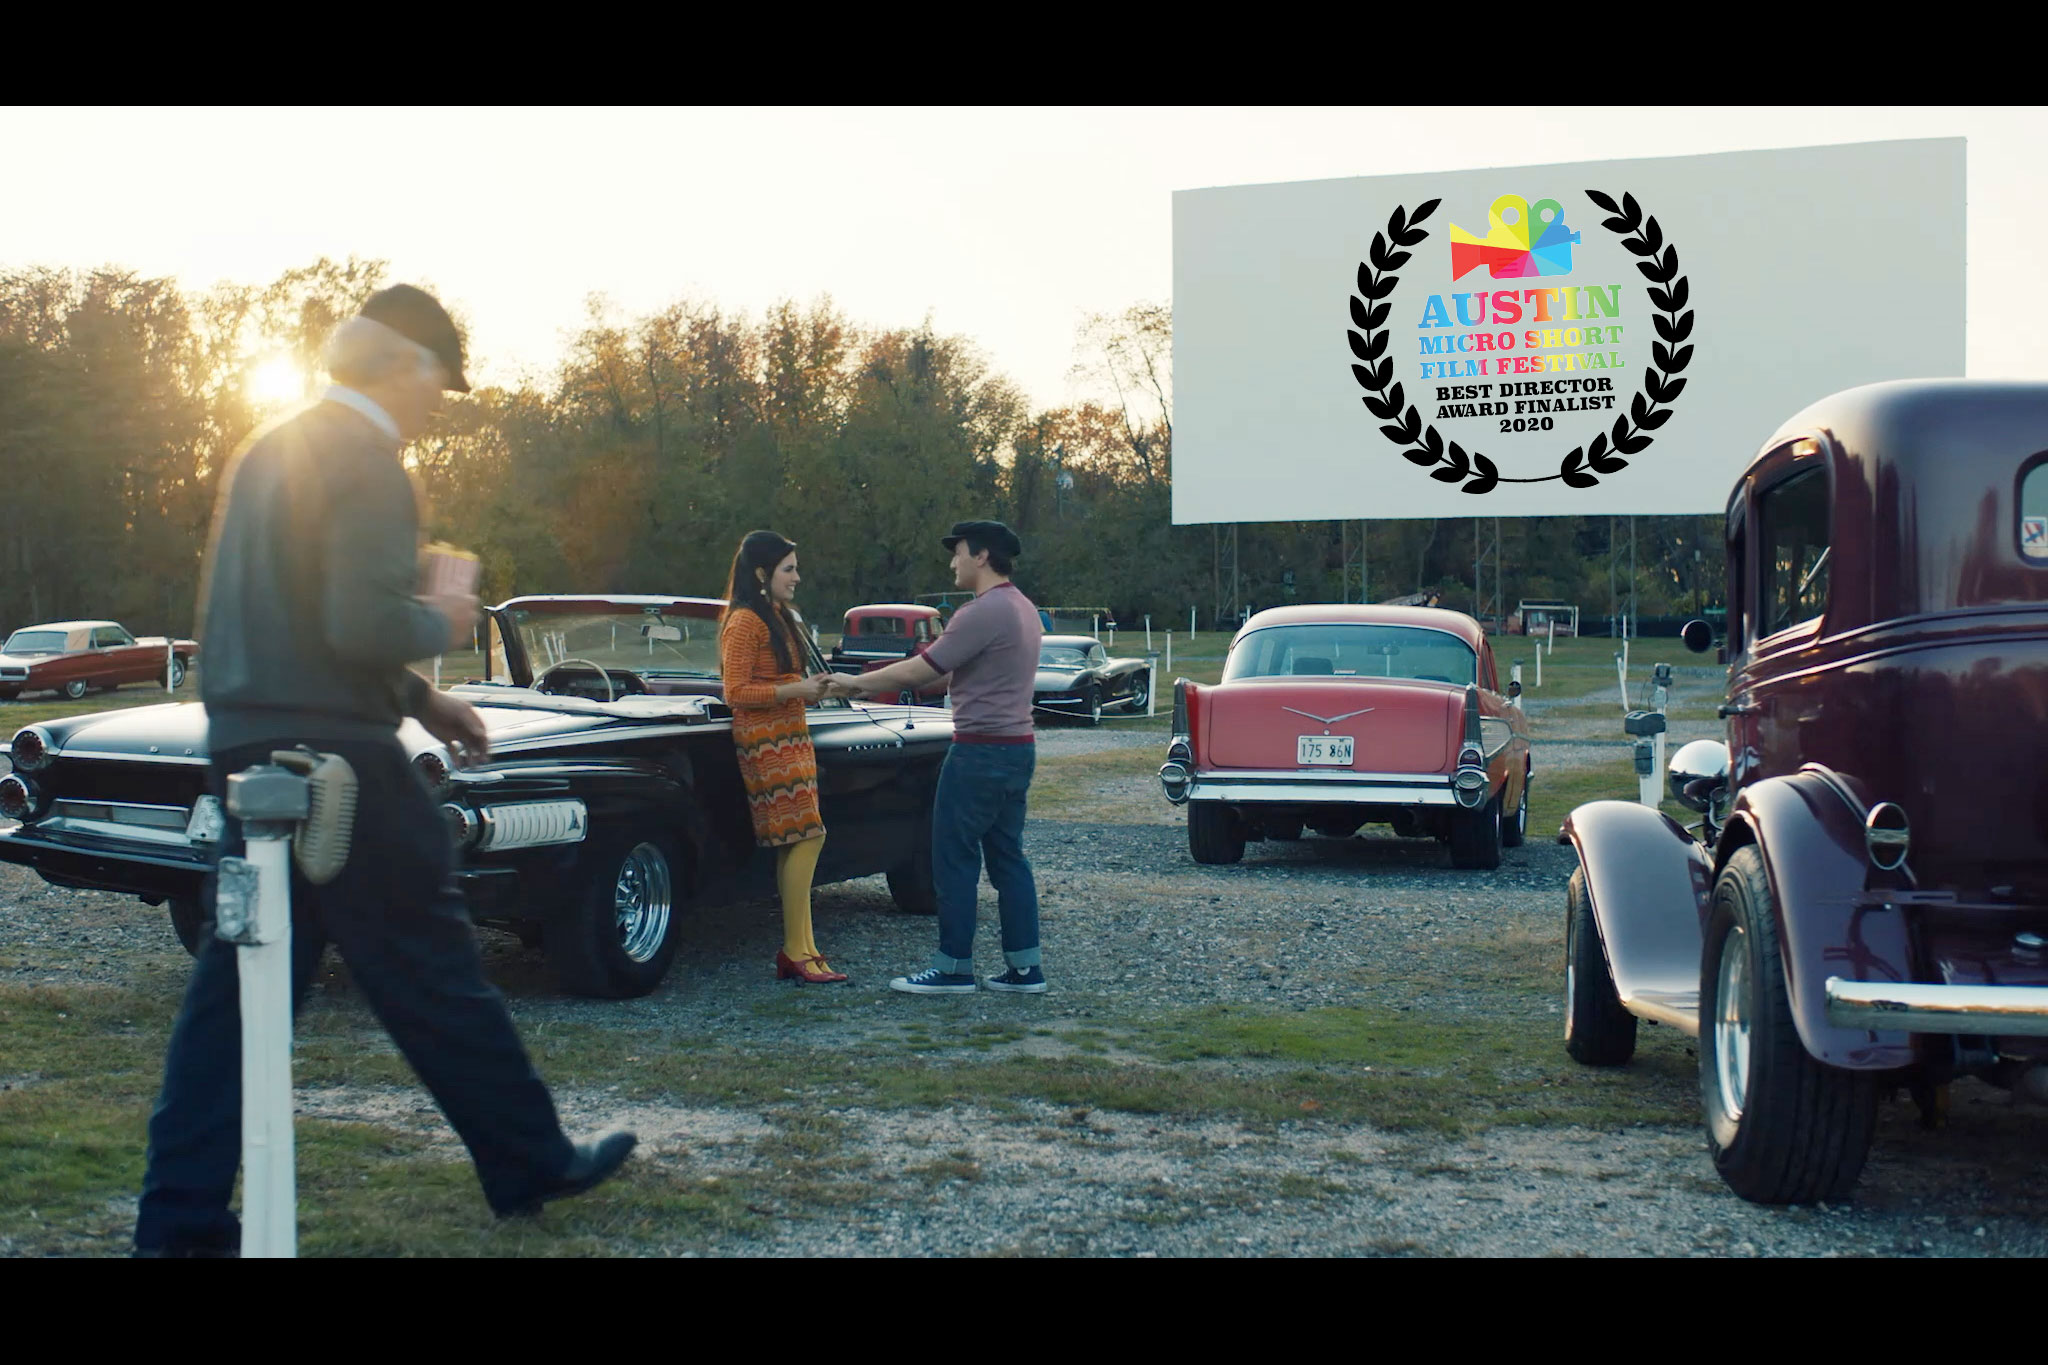 classic cars at drive-in theater, washington dc video production